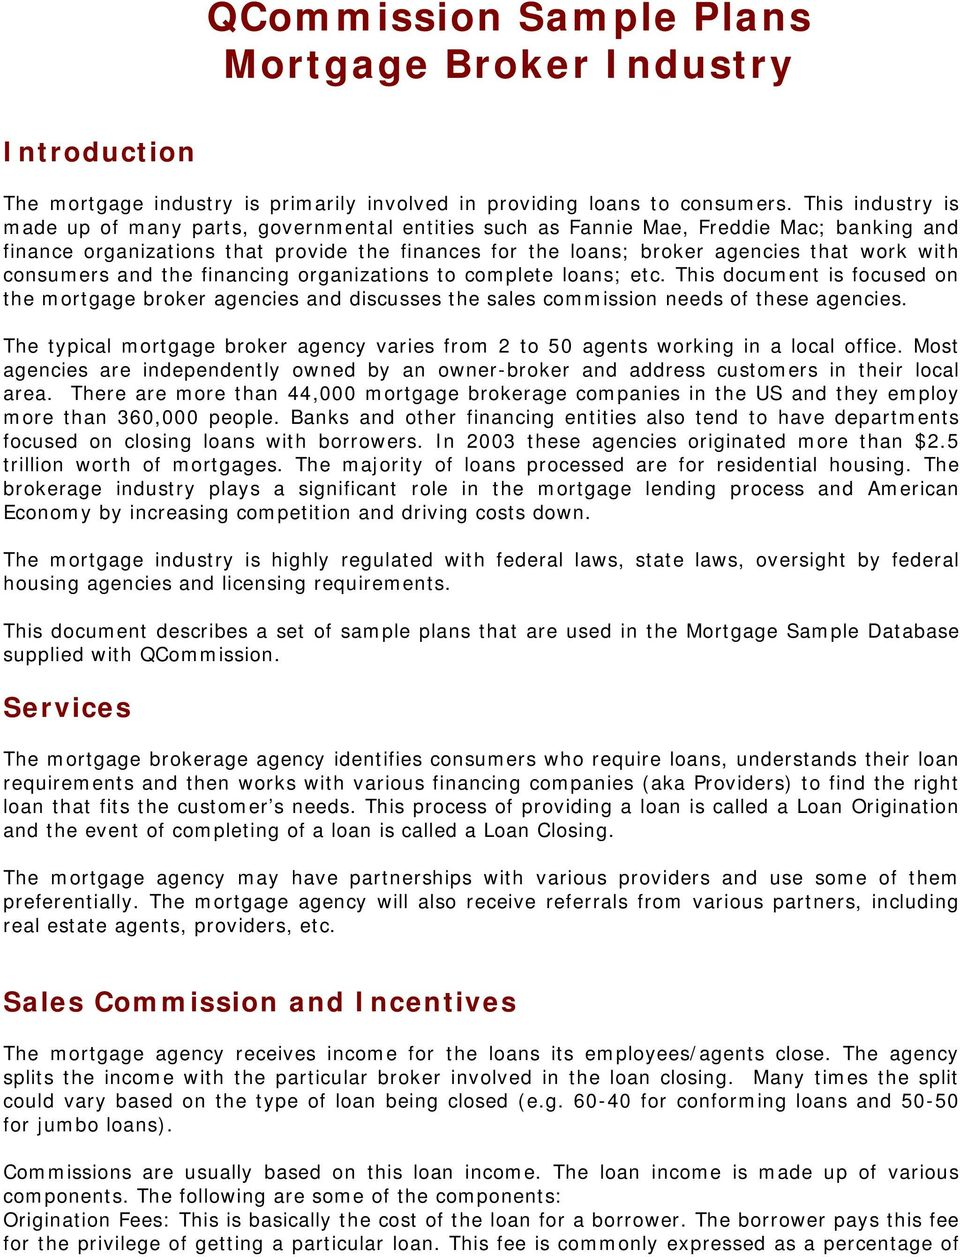 with consumers and the financing organizations to complete loans; etc. This document is focused on the mortgage broker agencies and discusses the sales commission needs of these agencies.